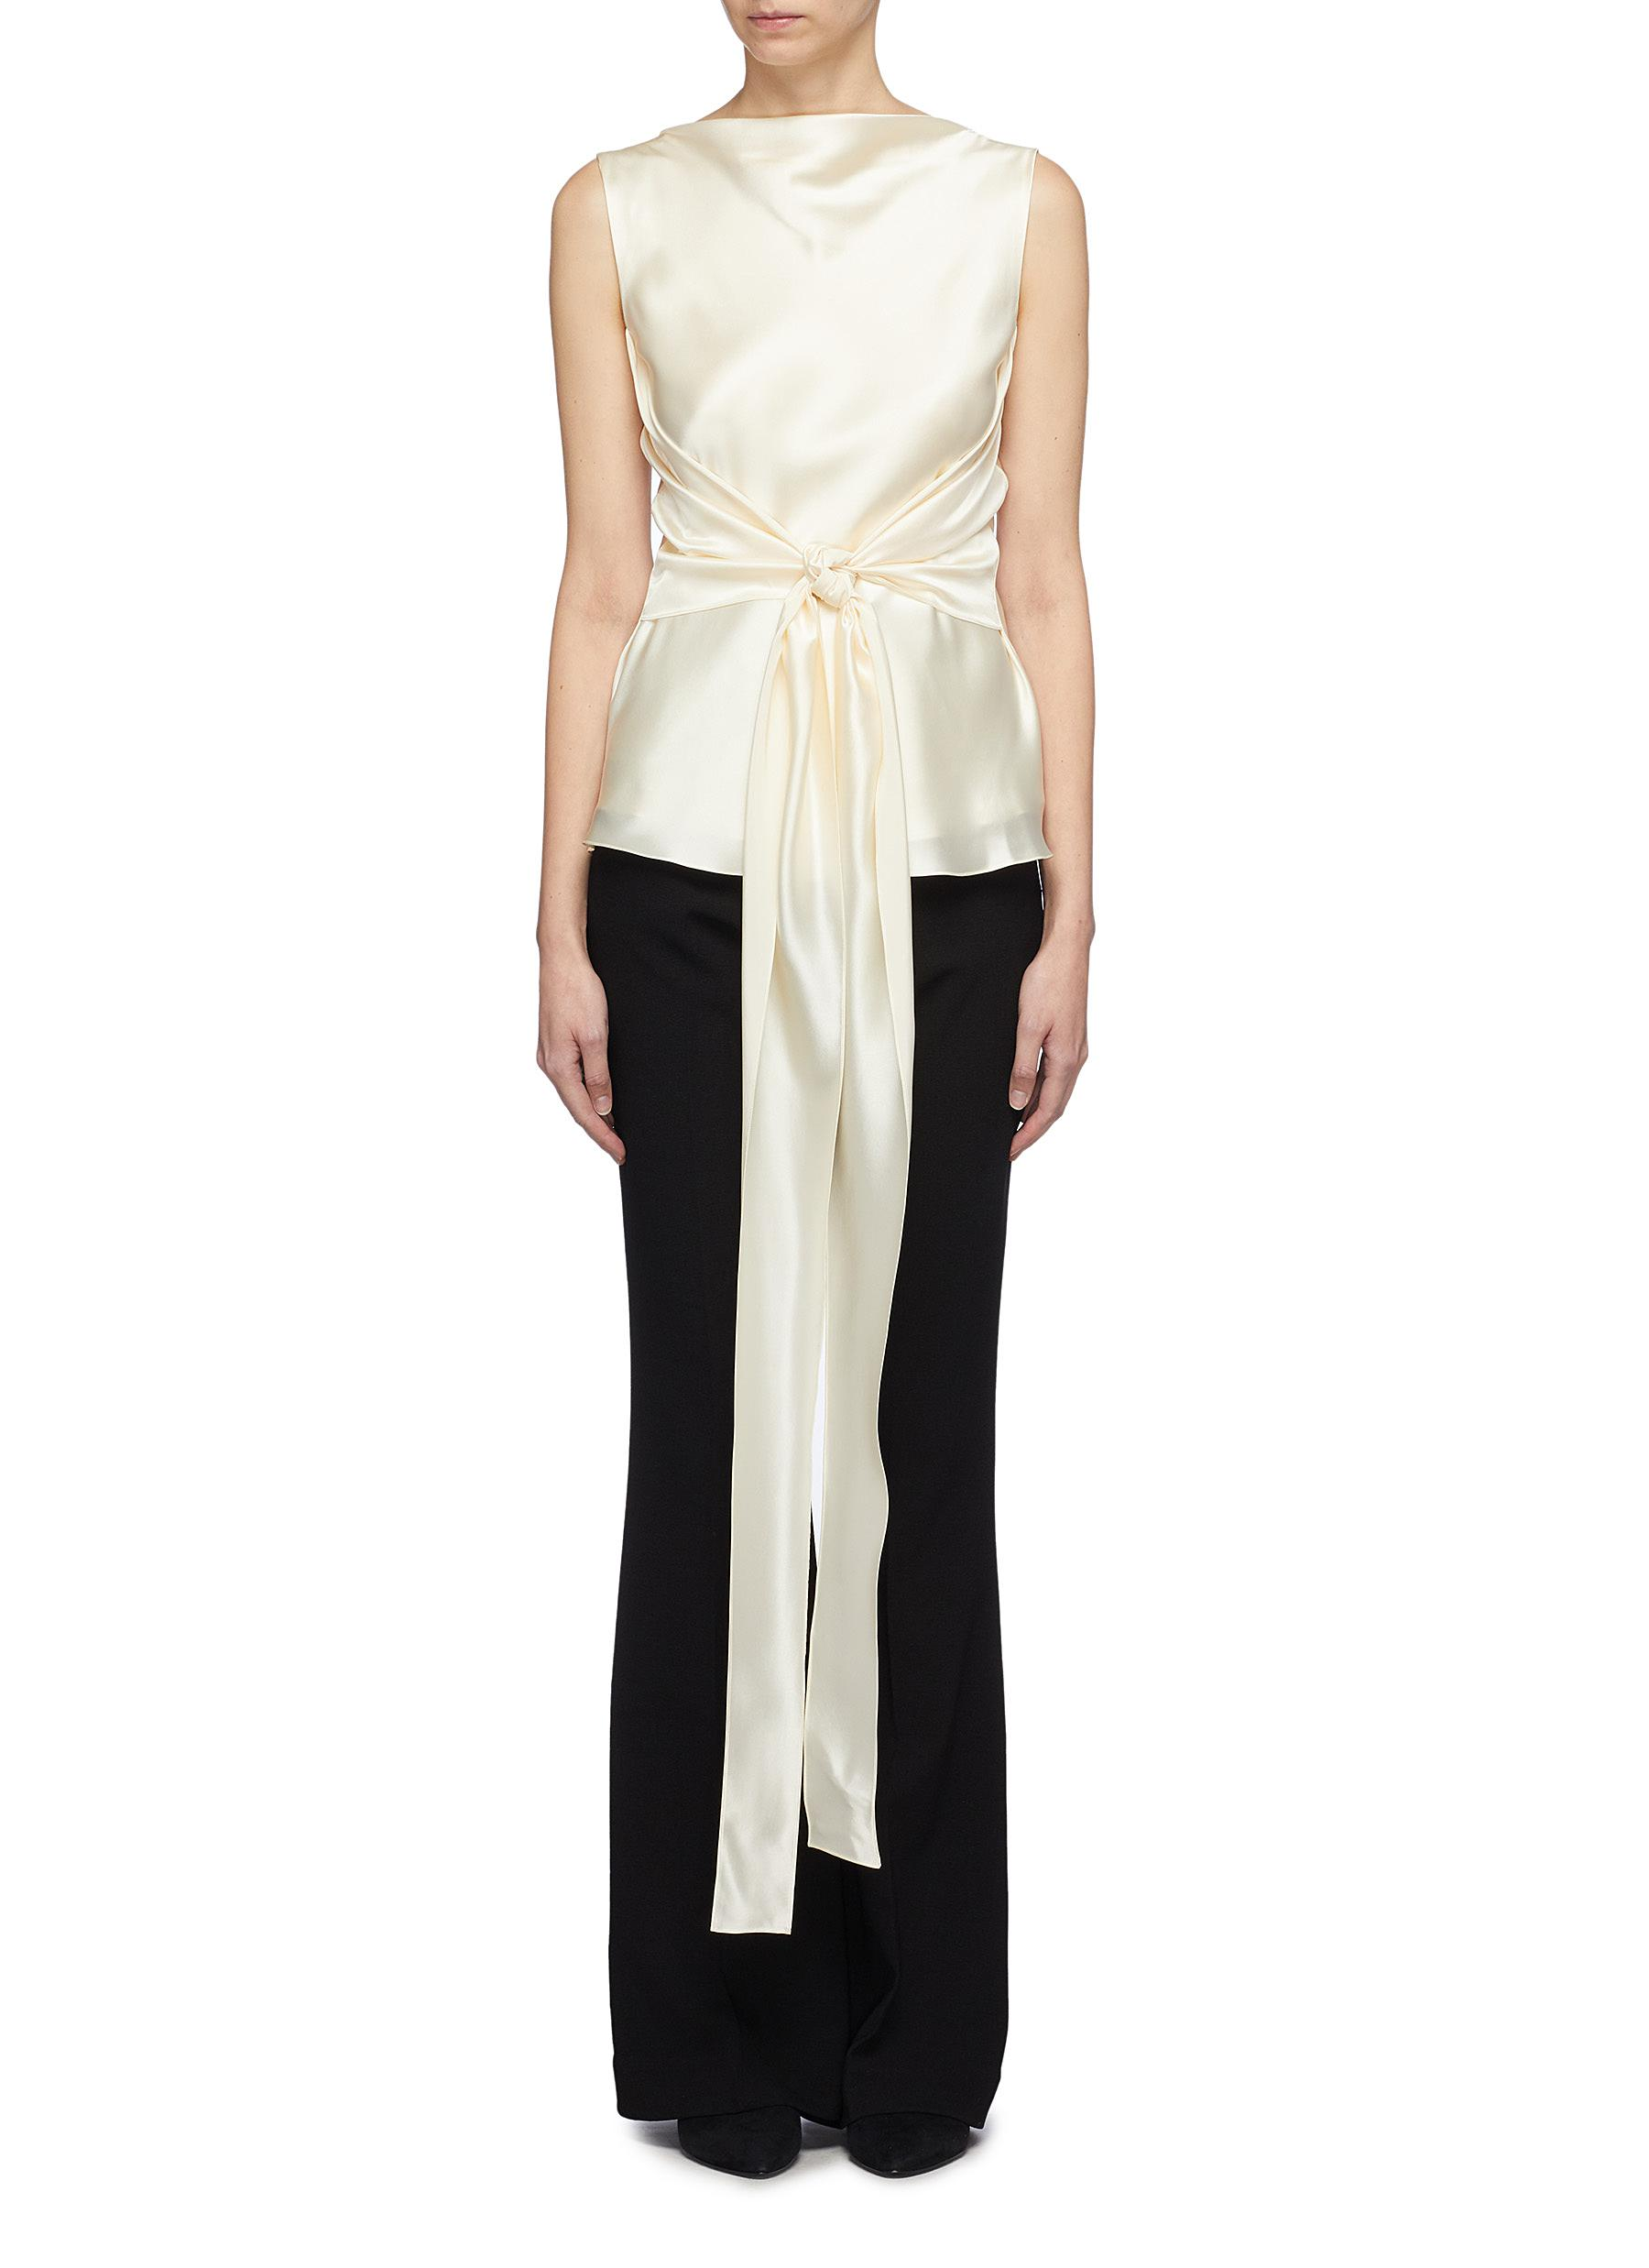 Kennedy sash tie waist silk satin top by Alex Eagle